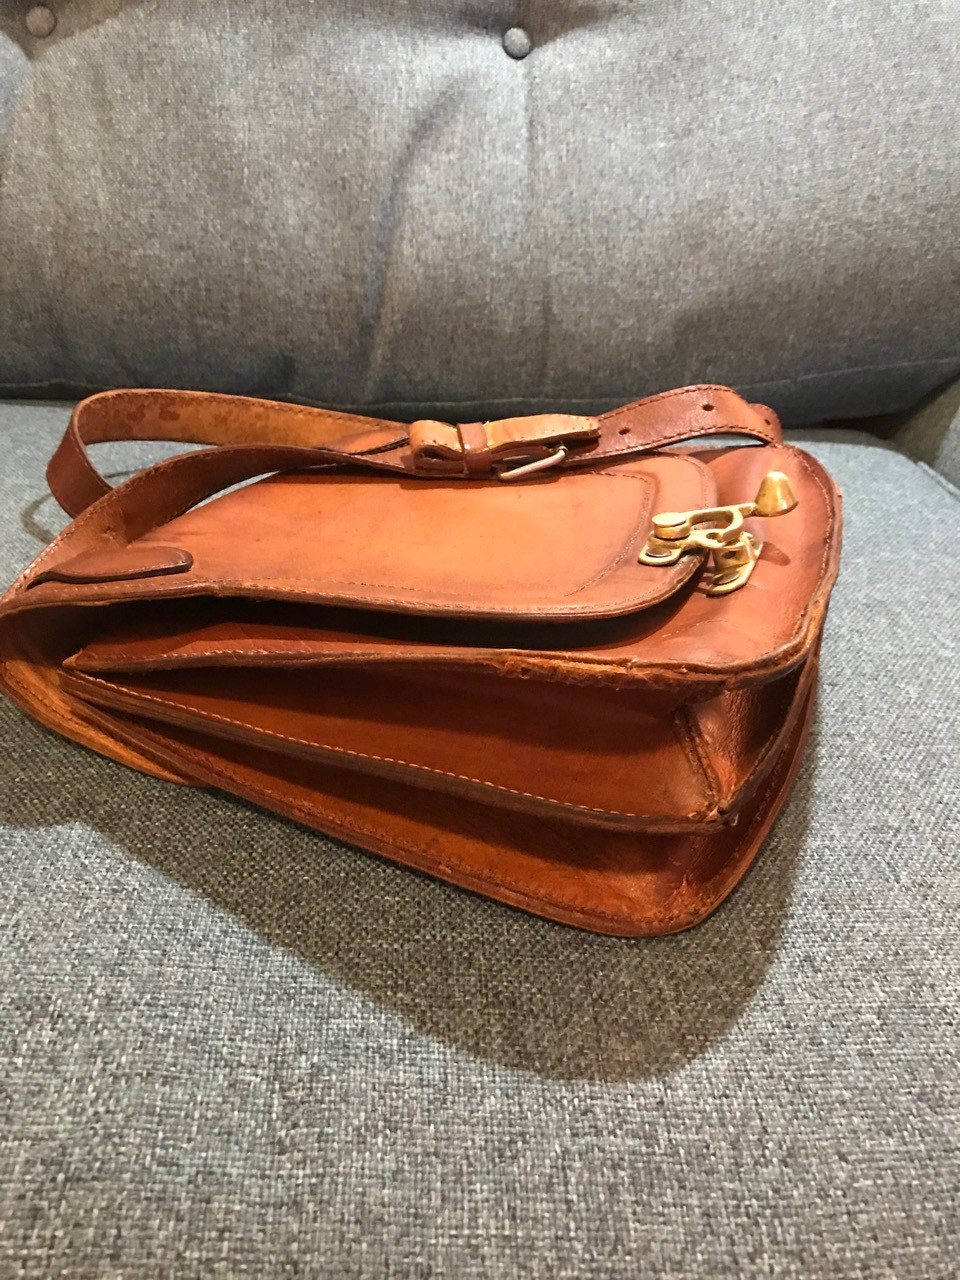 Restored Saddle Bag